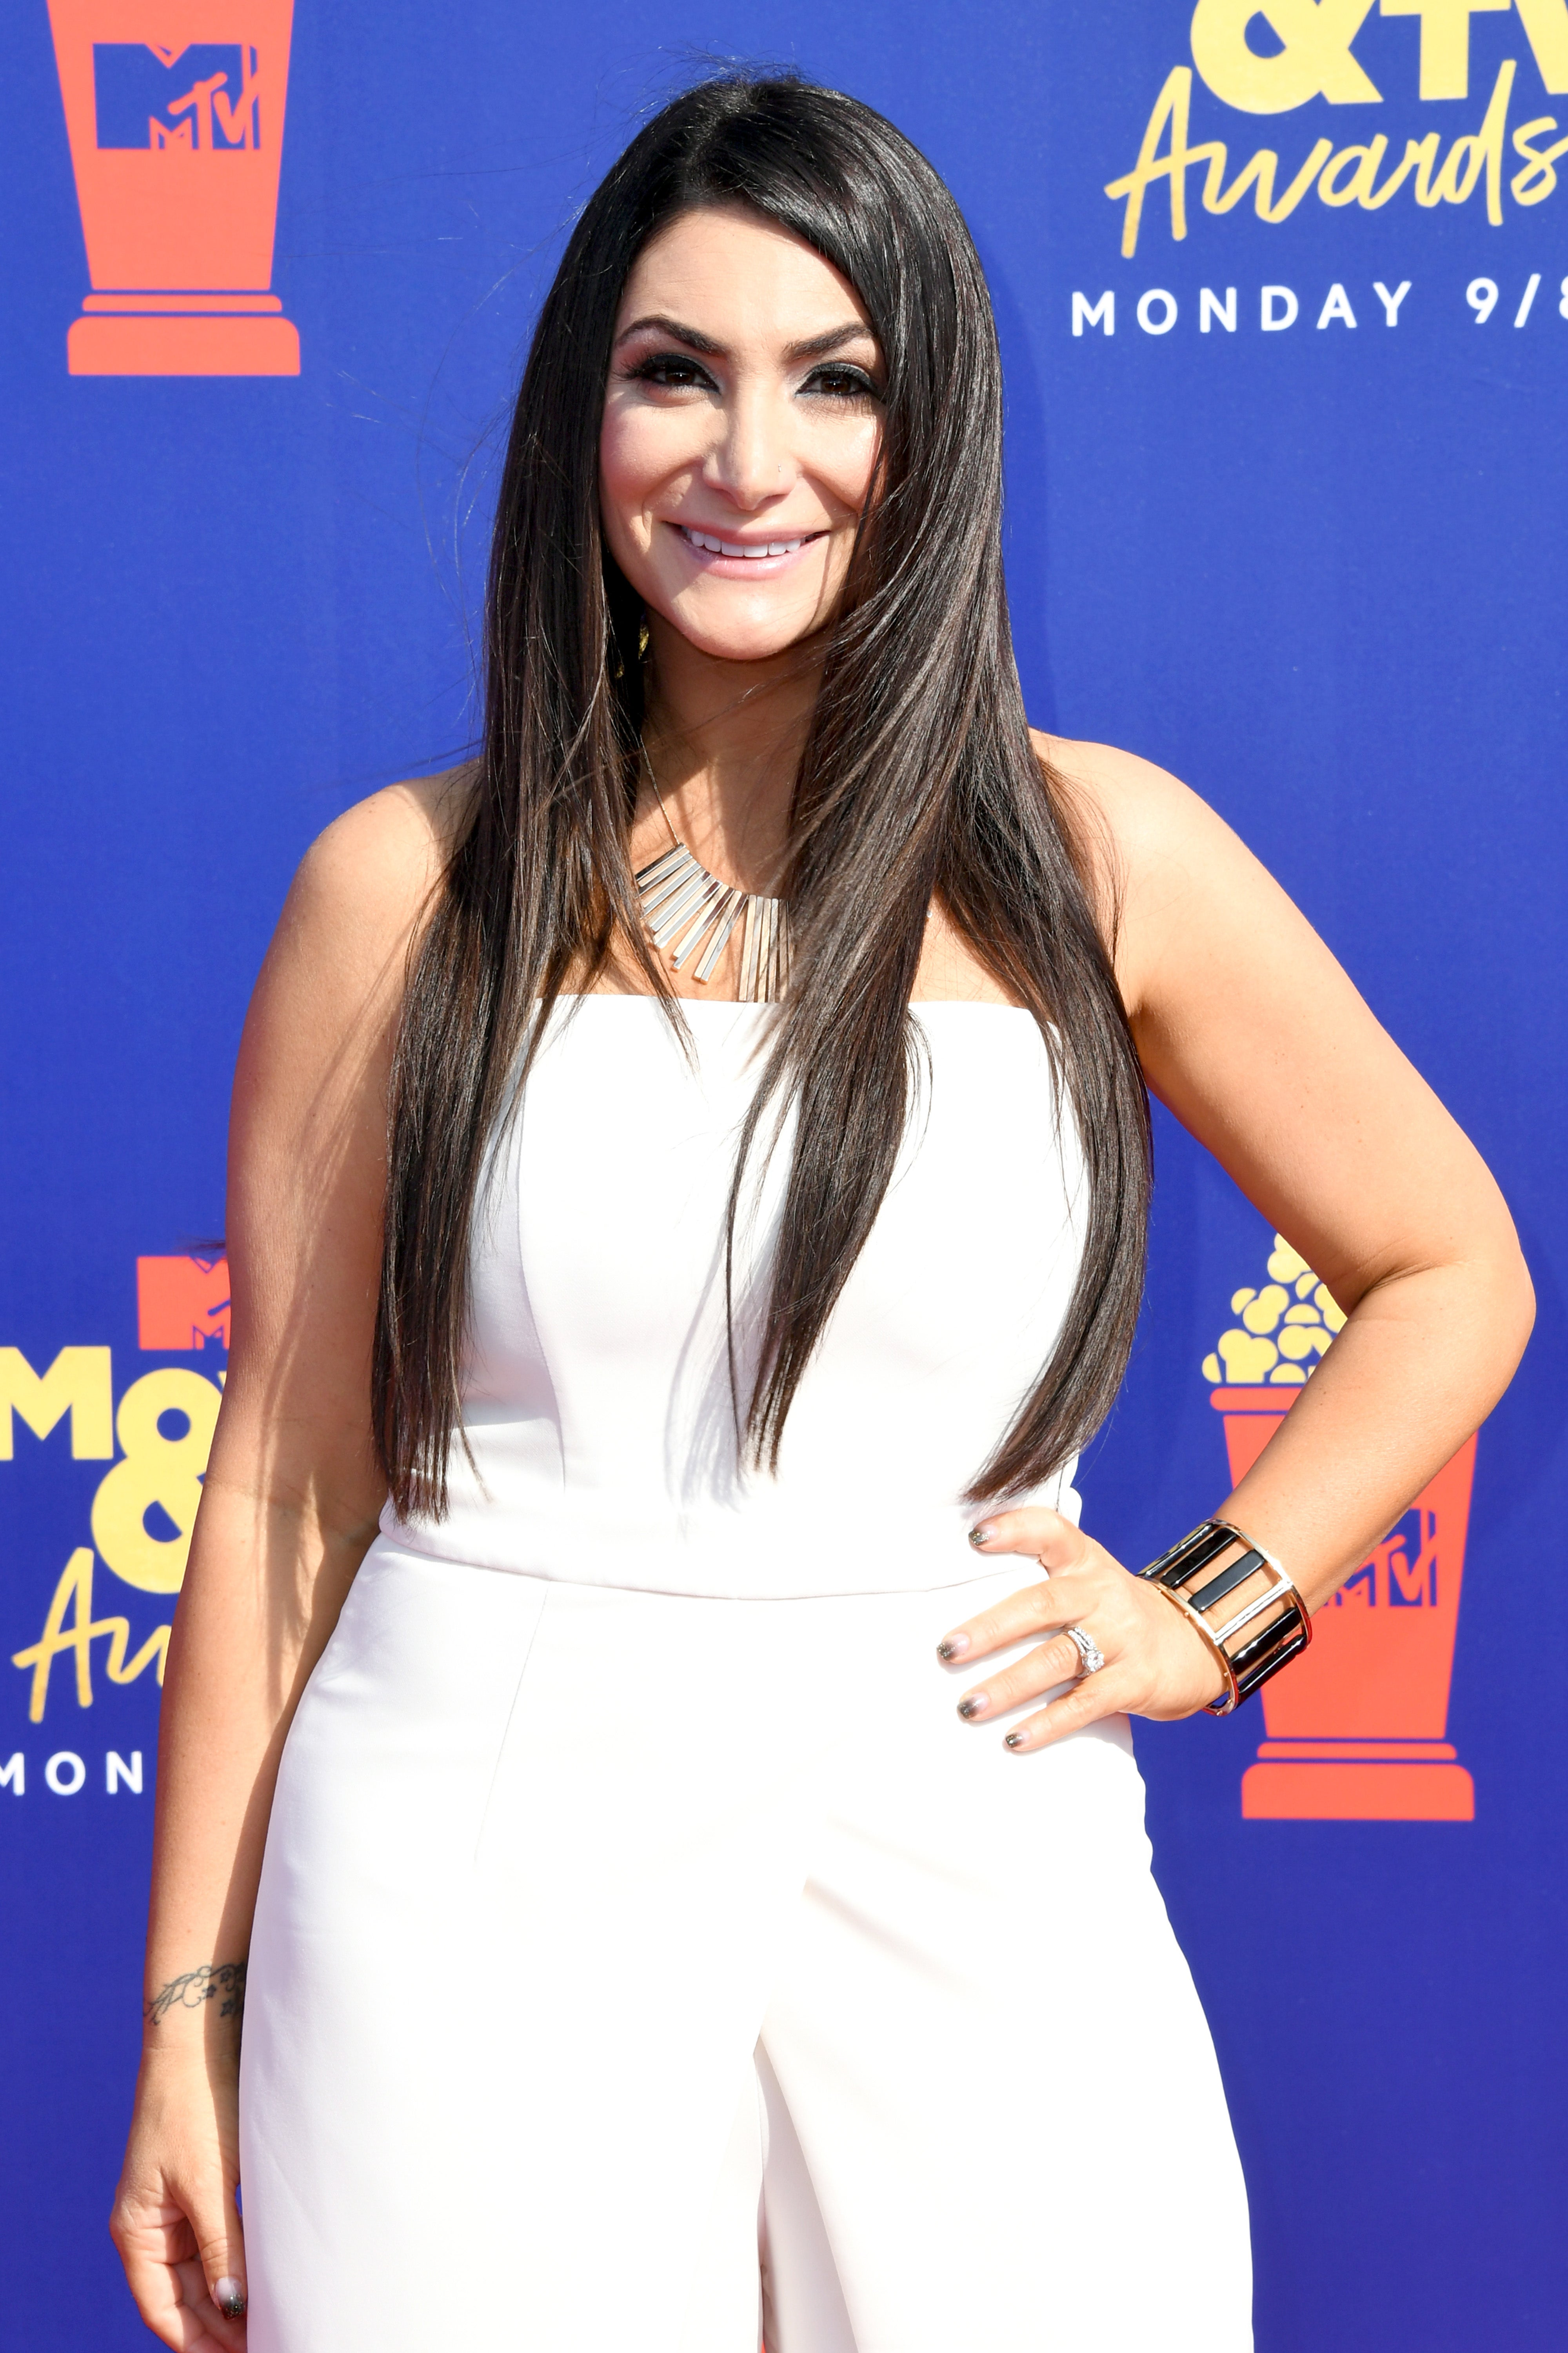 'Jersey Shore' Star Deena Cortese Reveals Son Needs Foot Braces After Being Mom Shamed for the Way He Walks